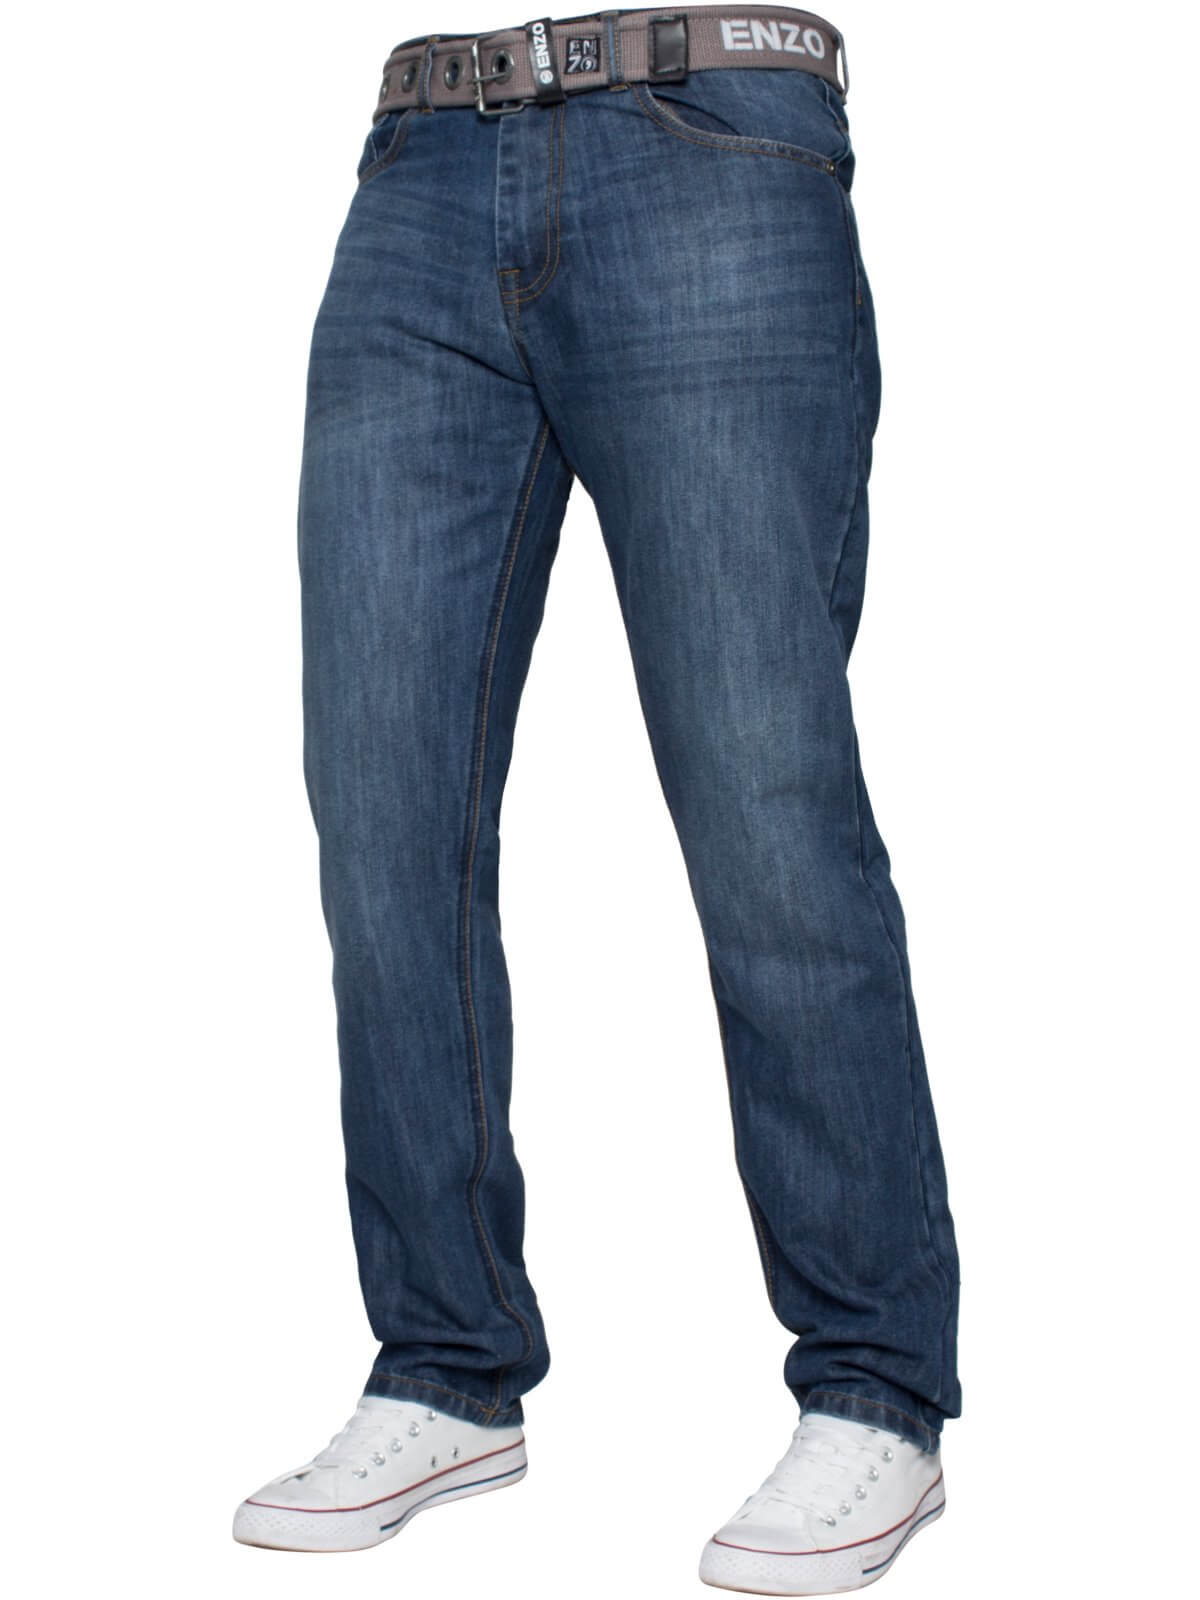 Mens Designer Blue Tapered Fit Denim Jeans | Enzo Designer Menswear